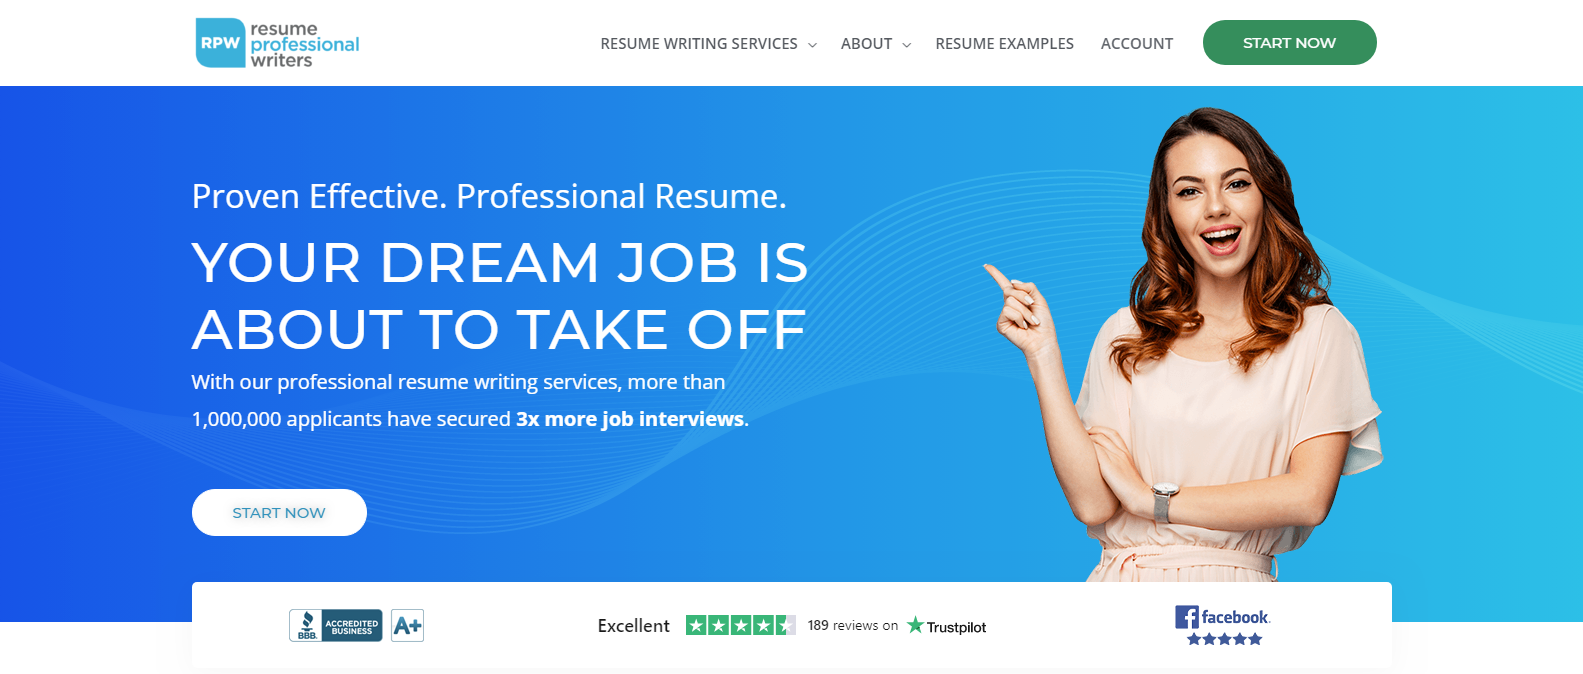 Best Sales Resume Services - Screenshot of Resume Professional Writers Homepage